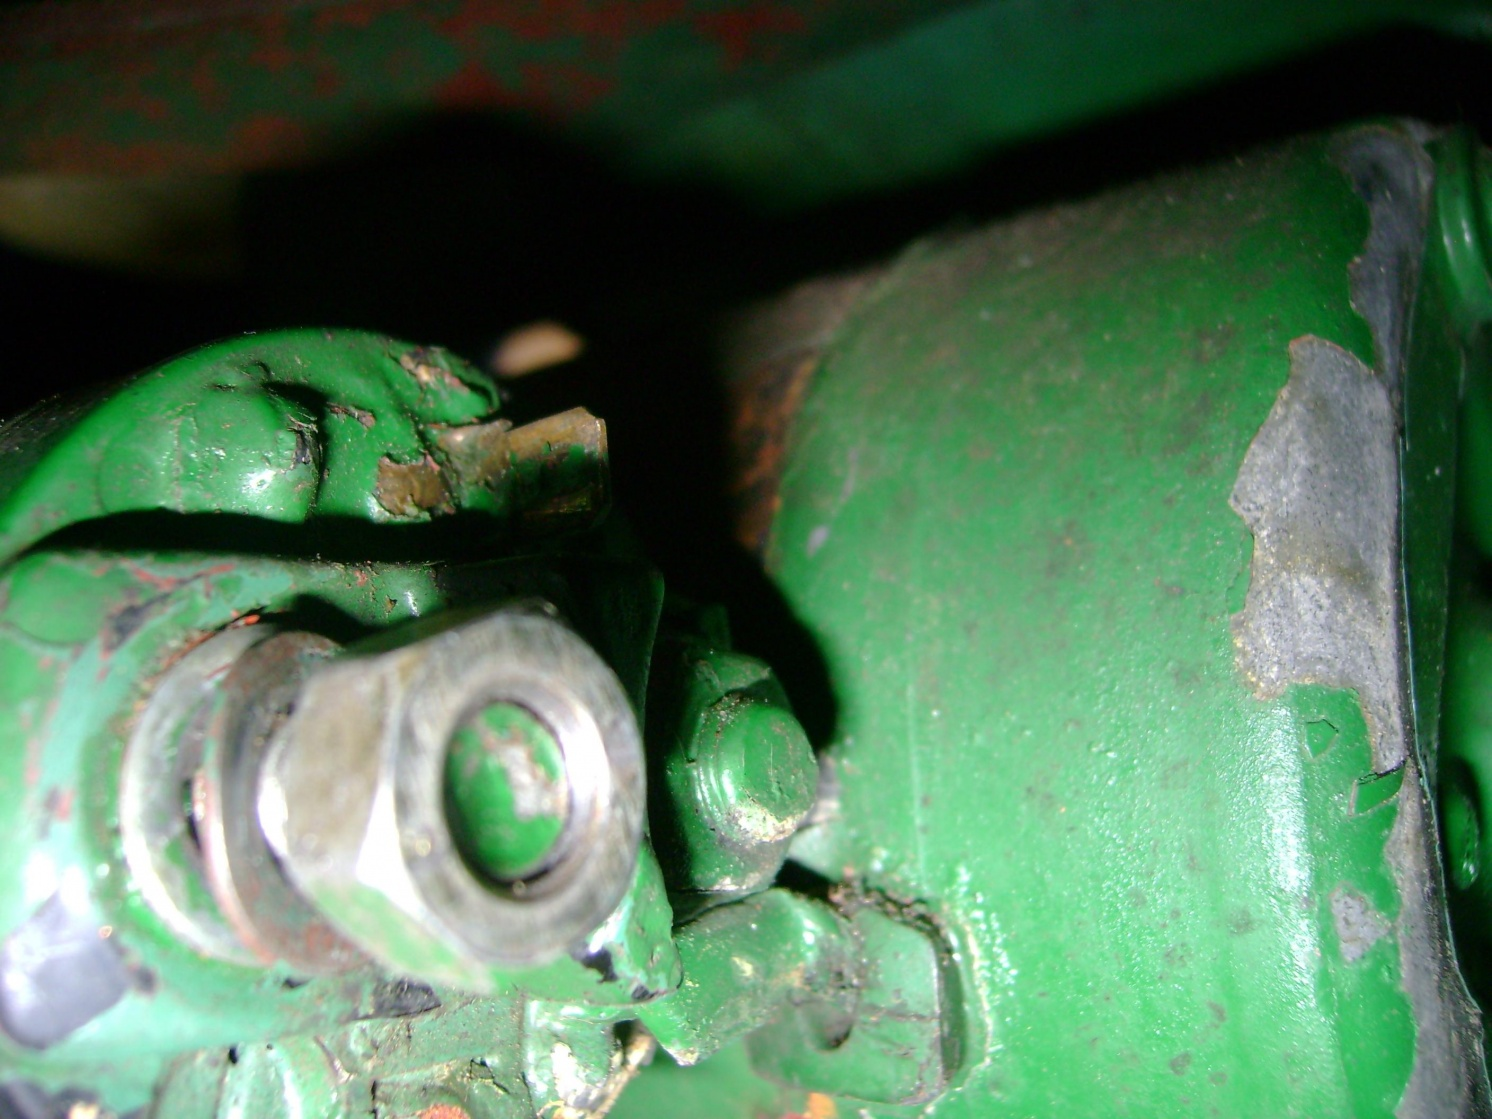 ... volvo penta md7a bottom.jpg Views: Click image for larger version Name:  DSC05799 small 2.jpg Views: 256 Size